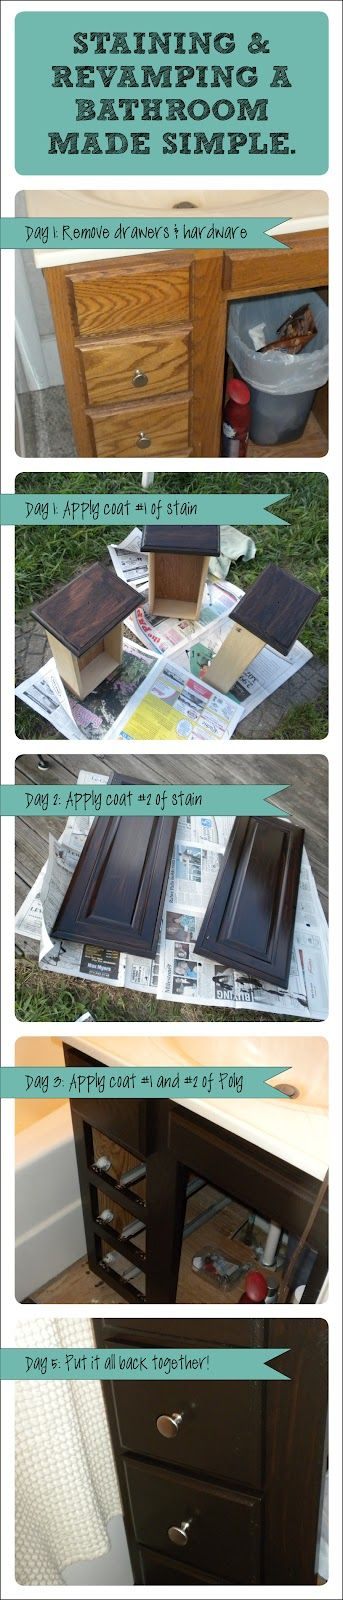 Staining made easy